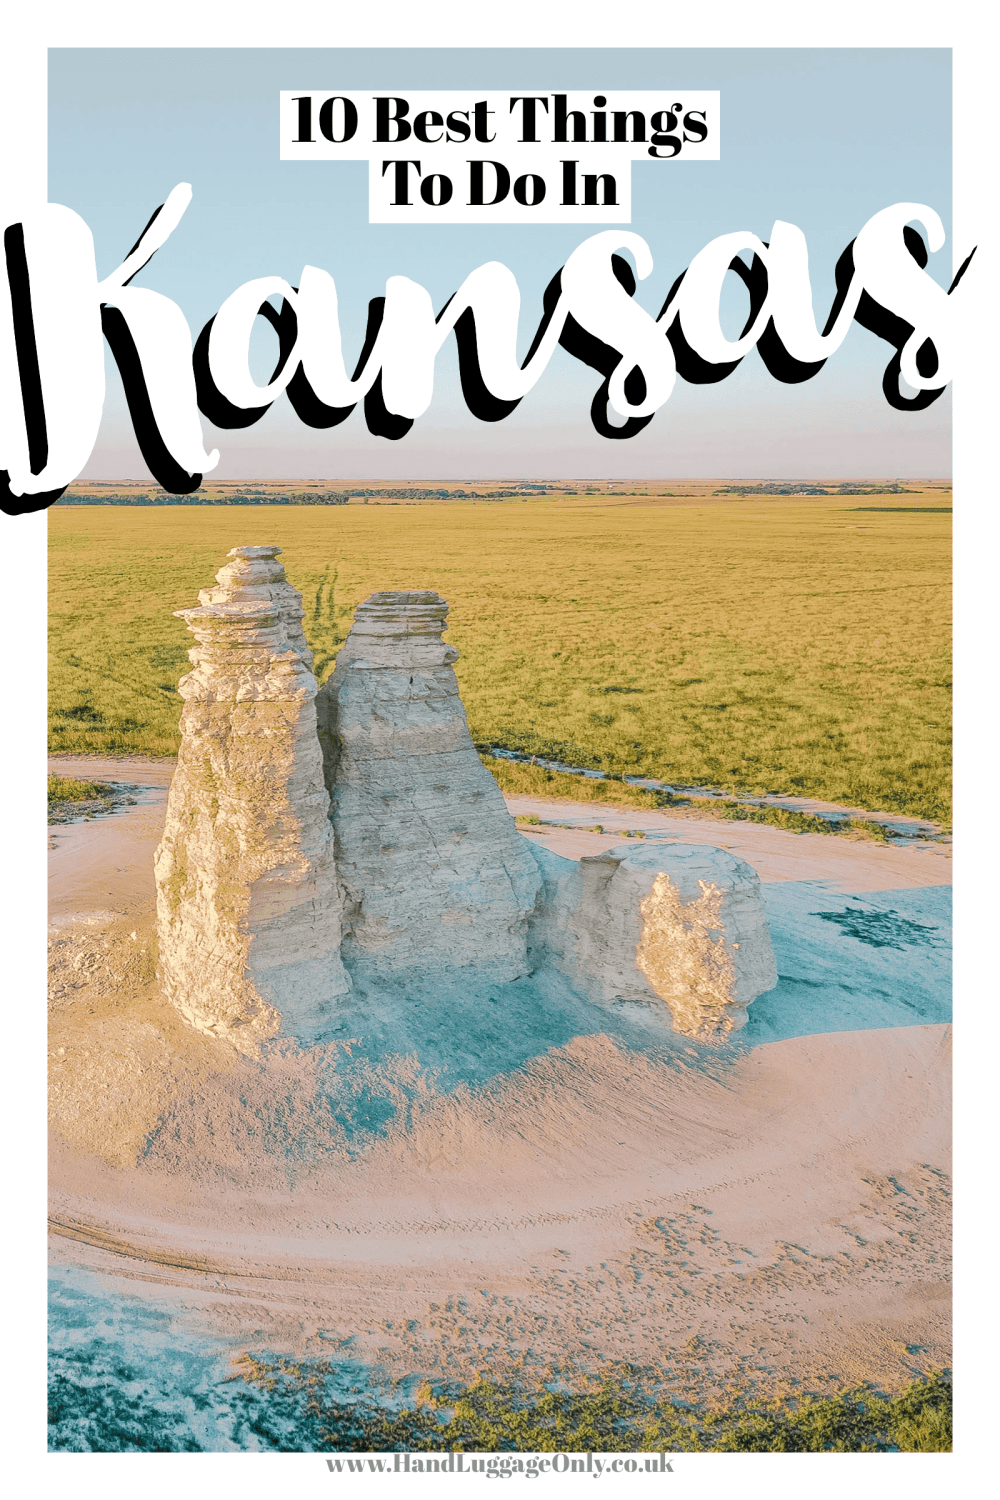 Best Things To Do In Kansas (1)